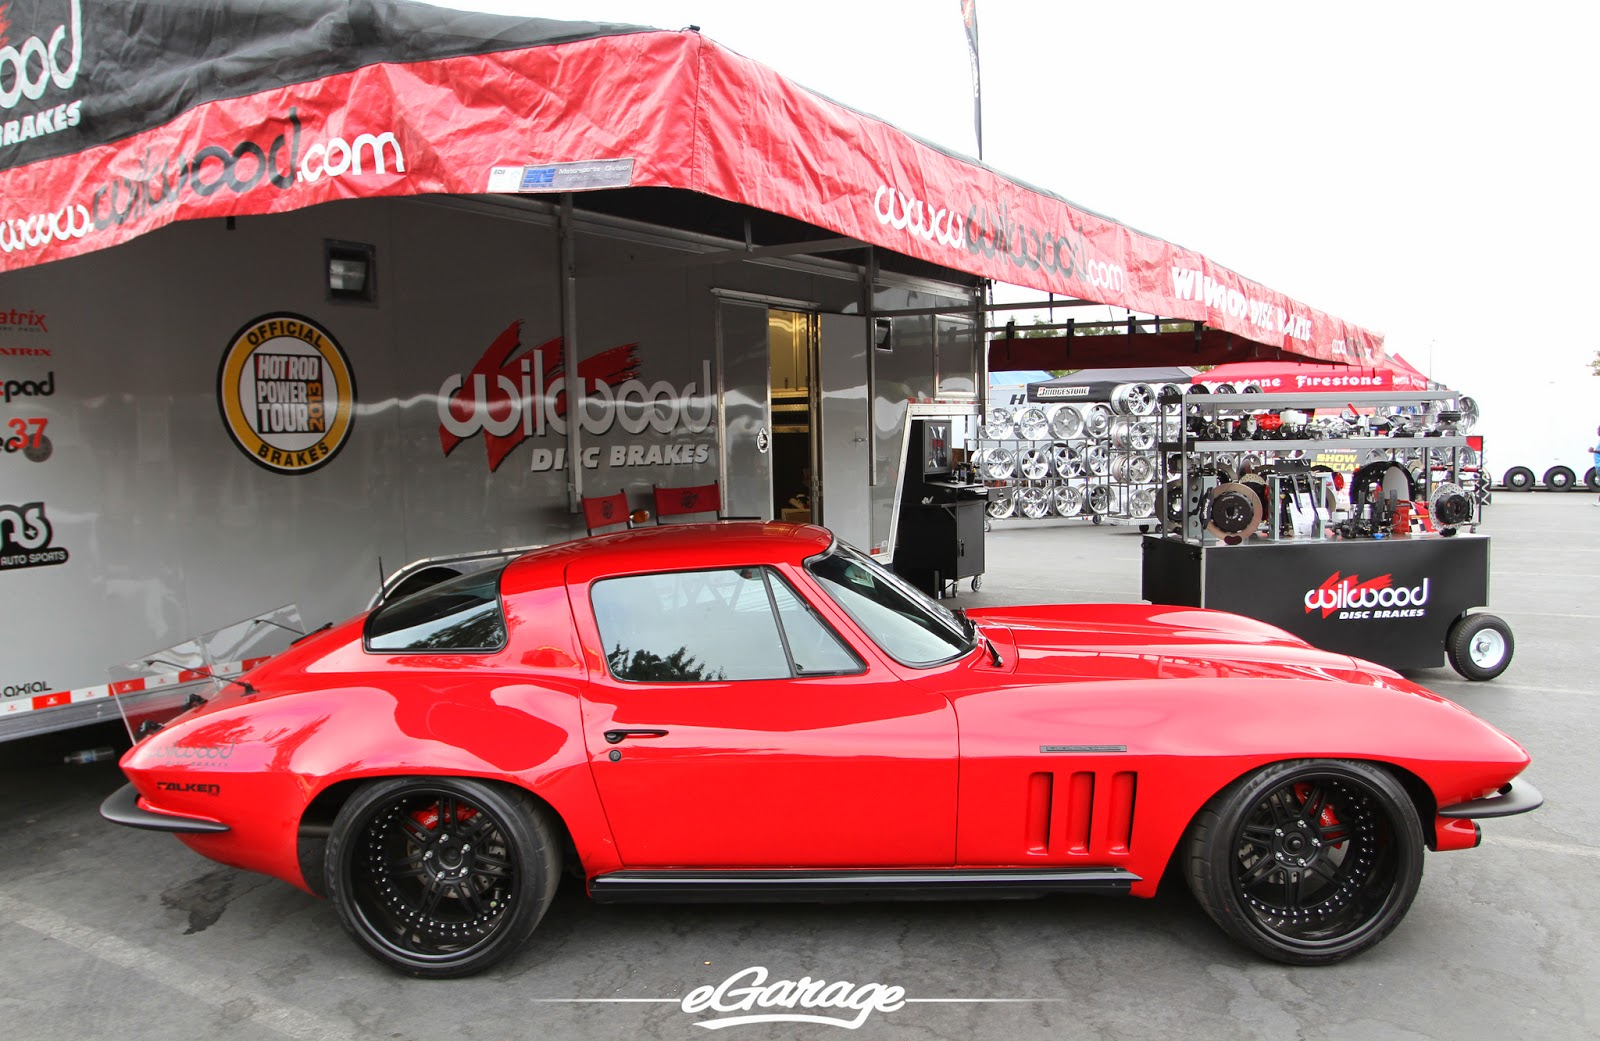 Tricked Out Showkase - A Custom Car   Sport Truck   SUV   Exotic ...